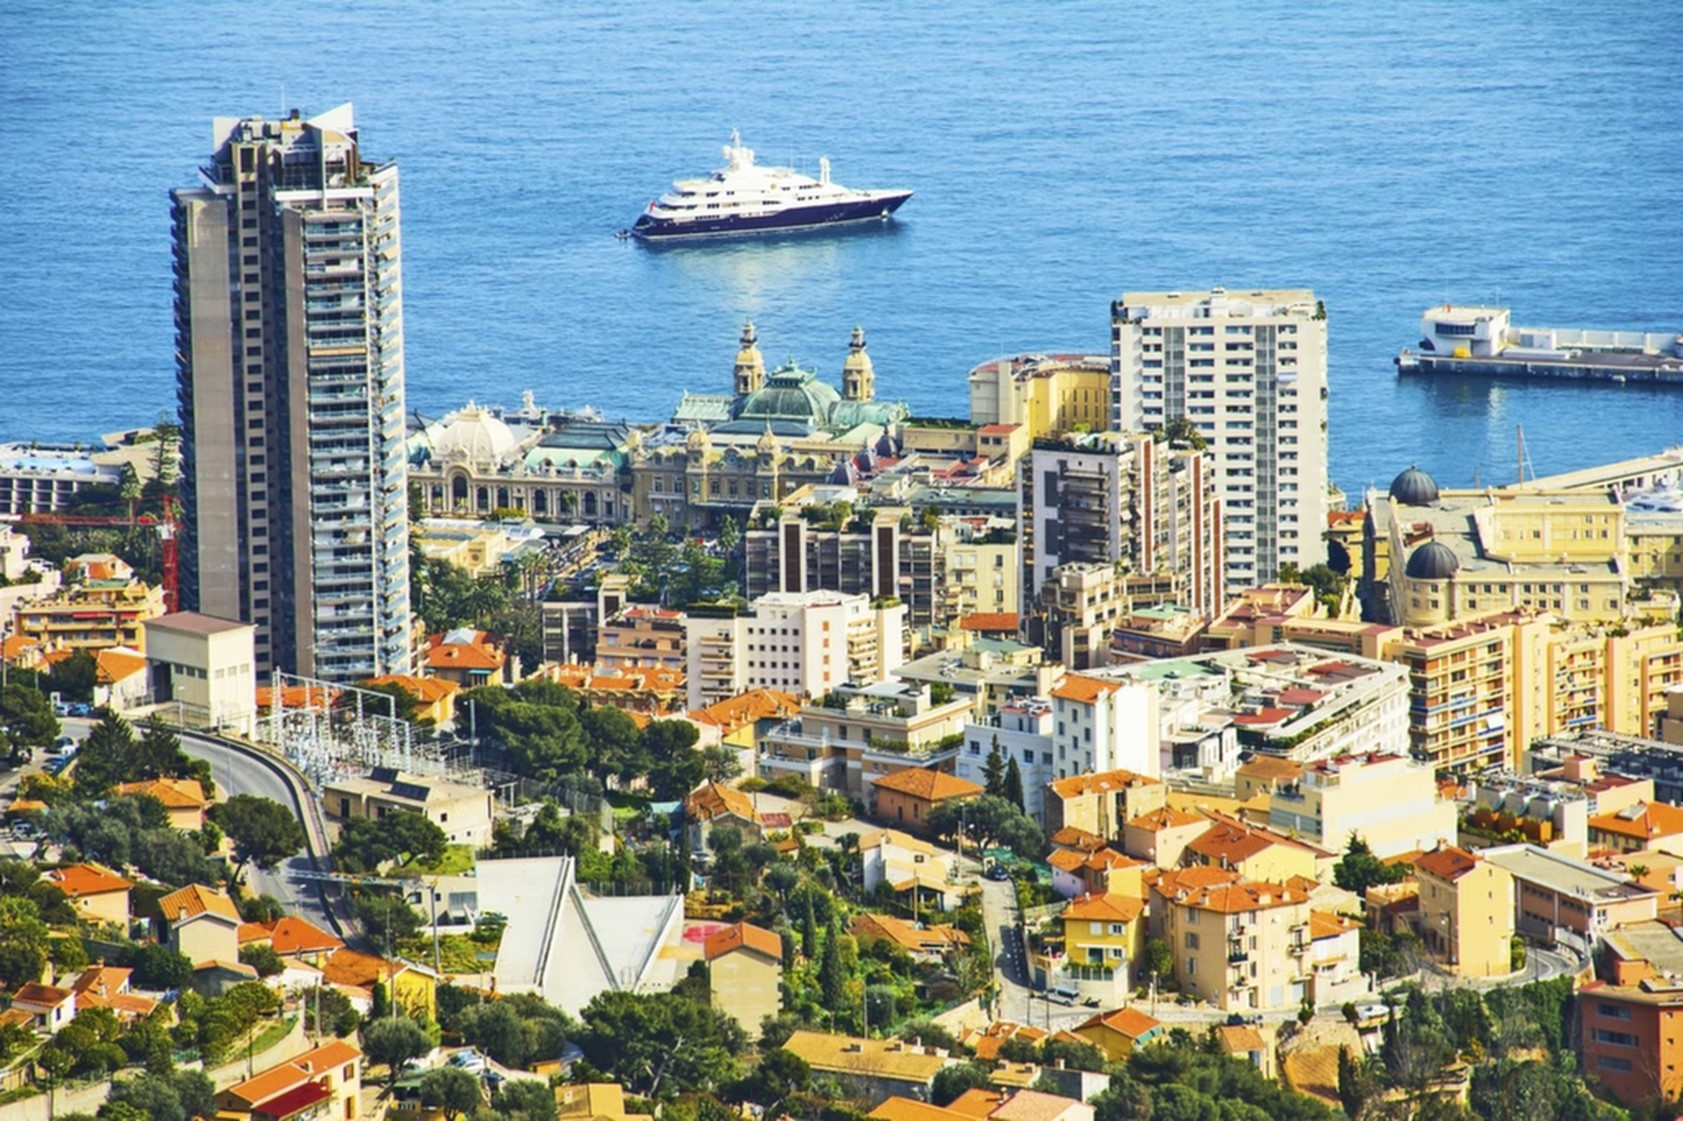 Monaco with monte carlo casino, yachts and beach